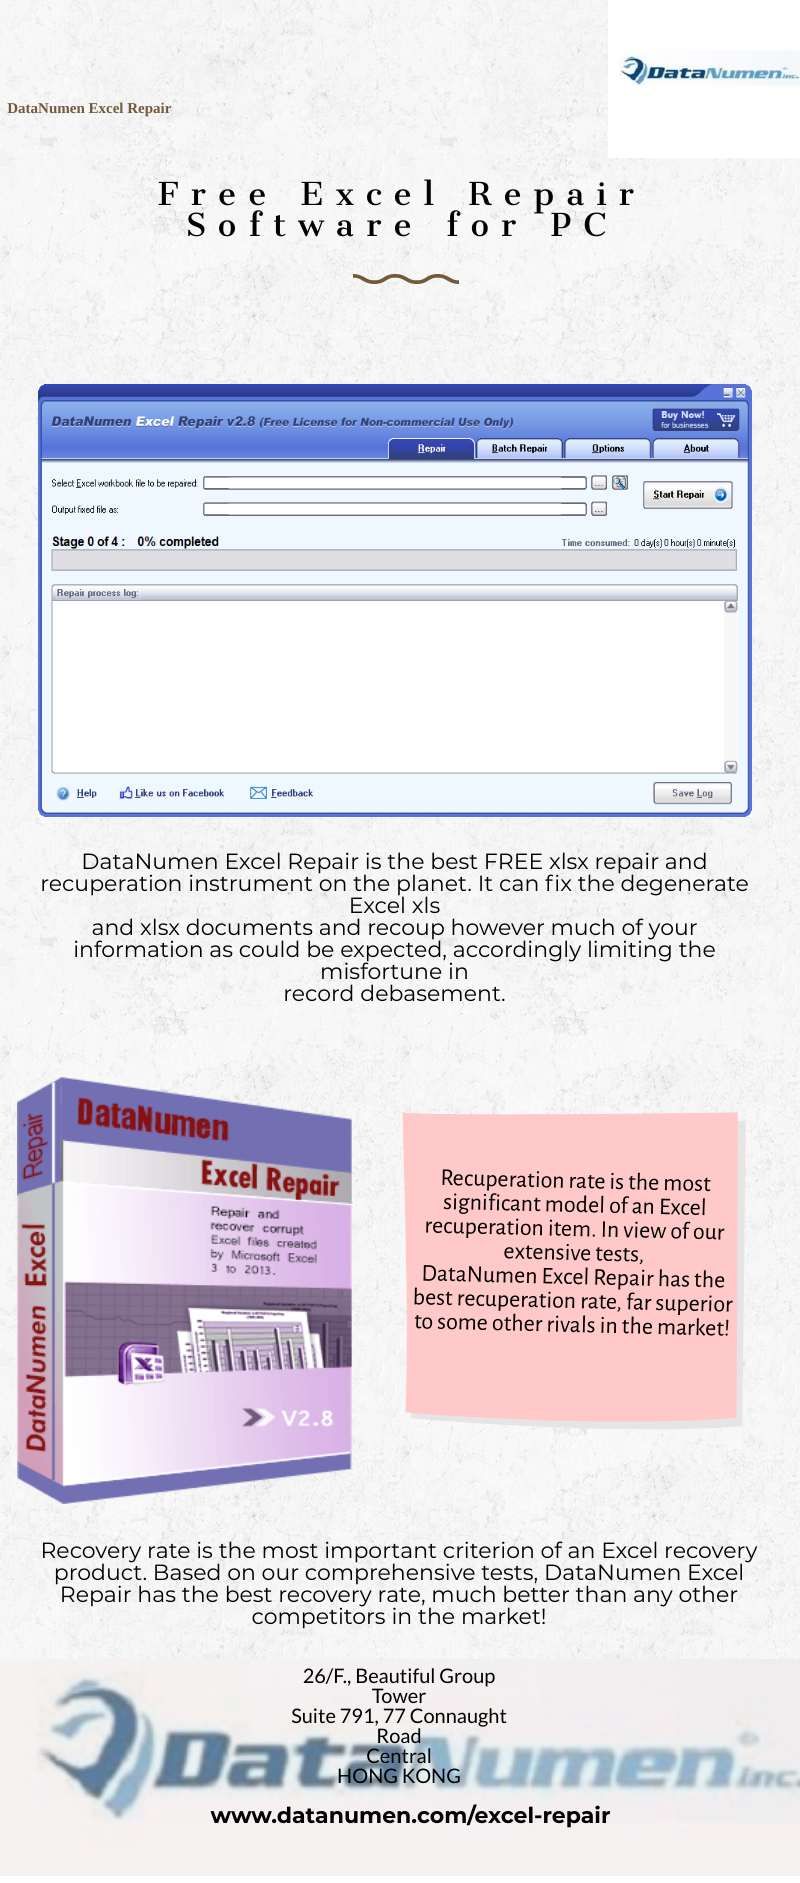 Free Excel Repair Software for PC